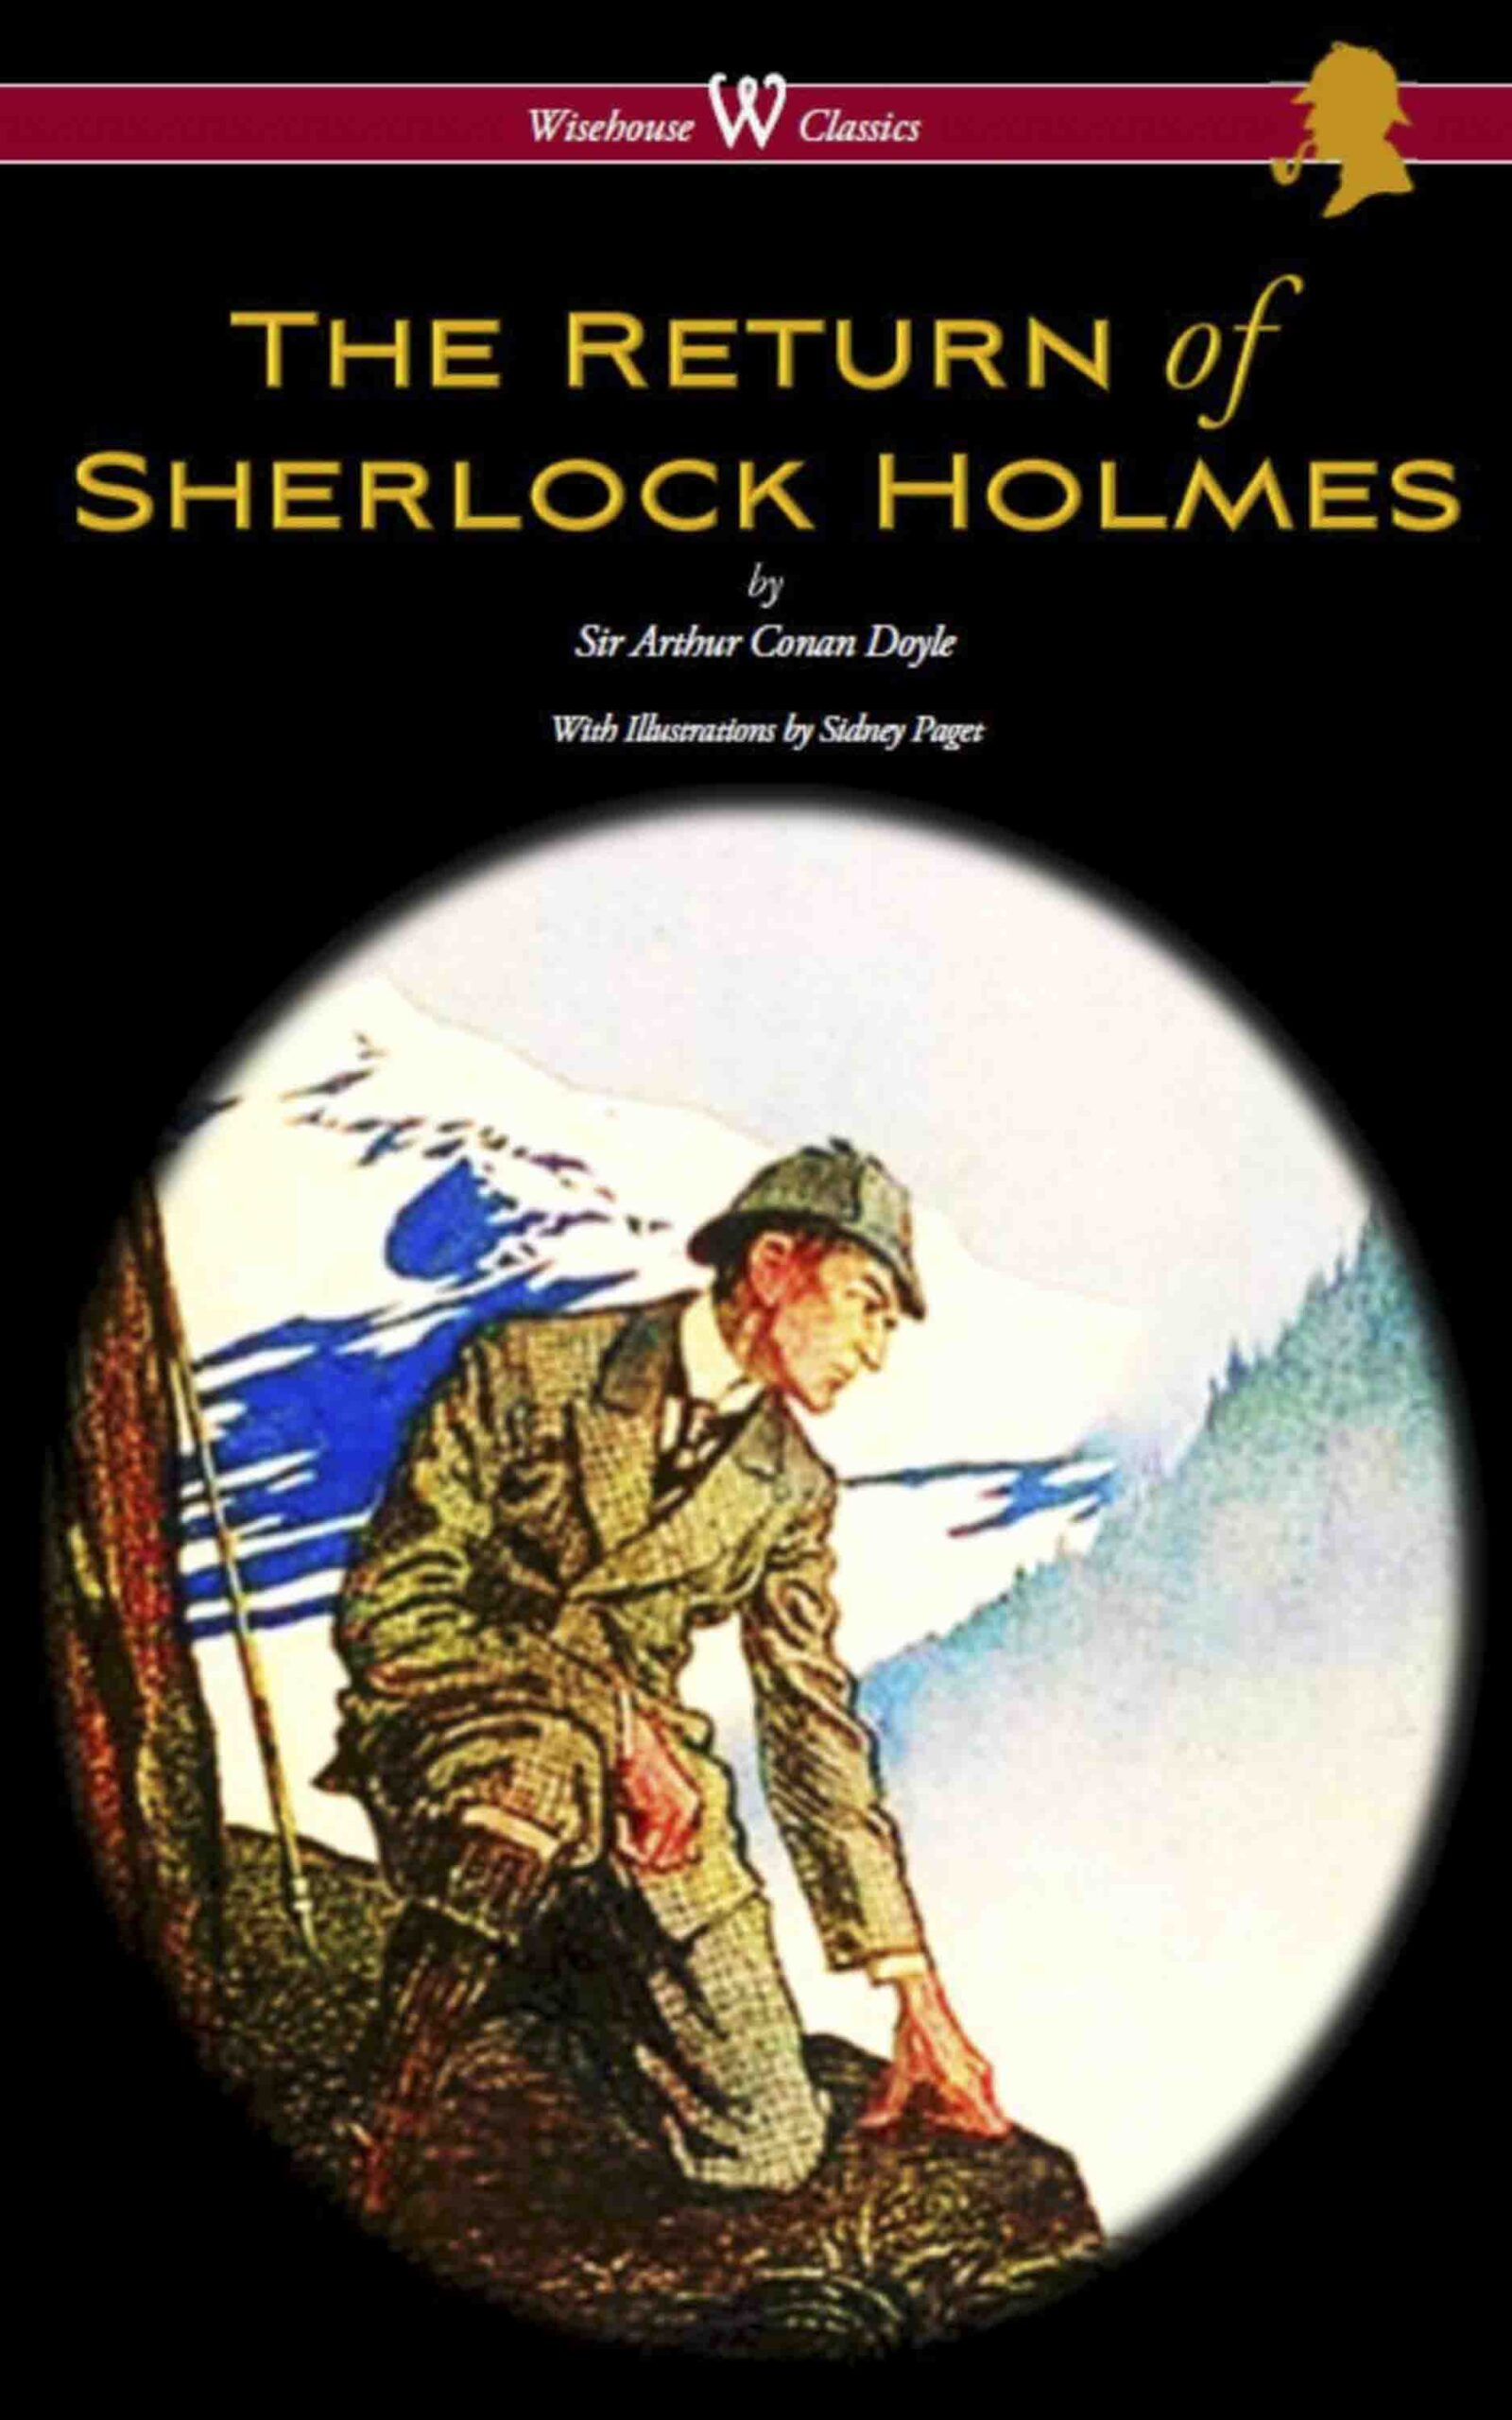 The Return of Sherlock Holmes (Wisehouse Classics Edition – With Original Illustrations by Sidney Paget)